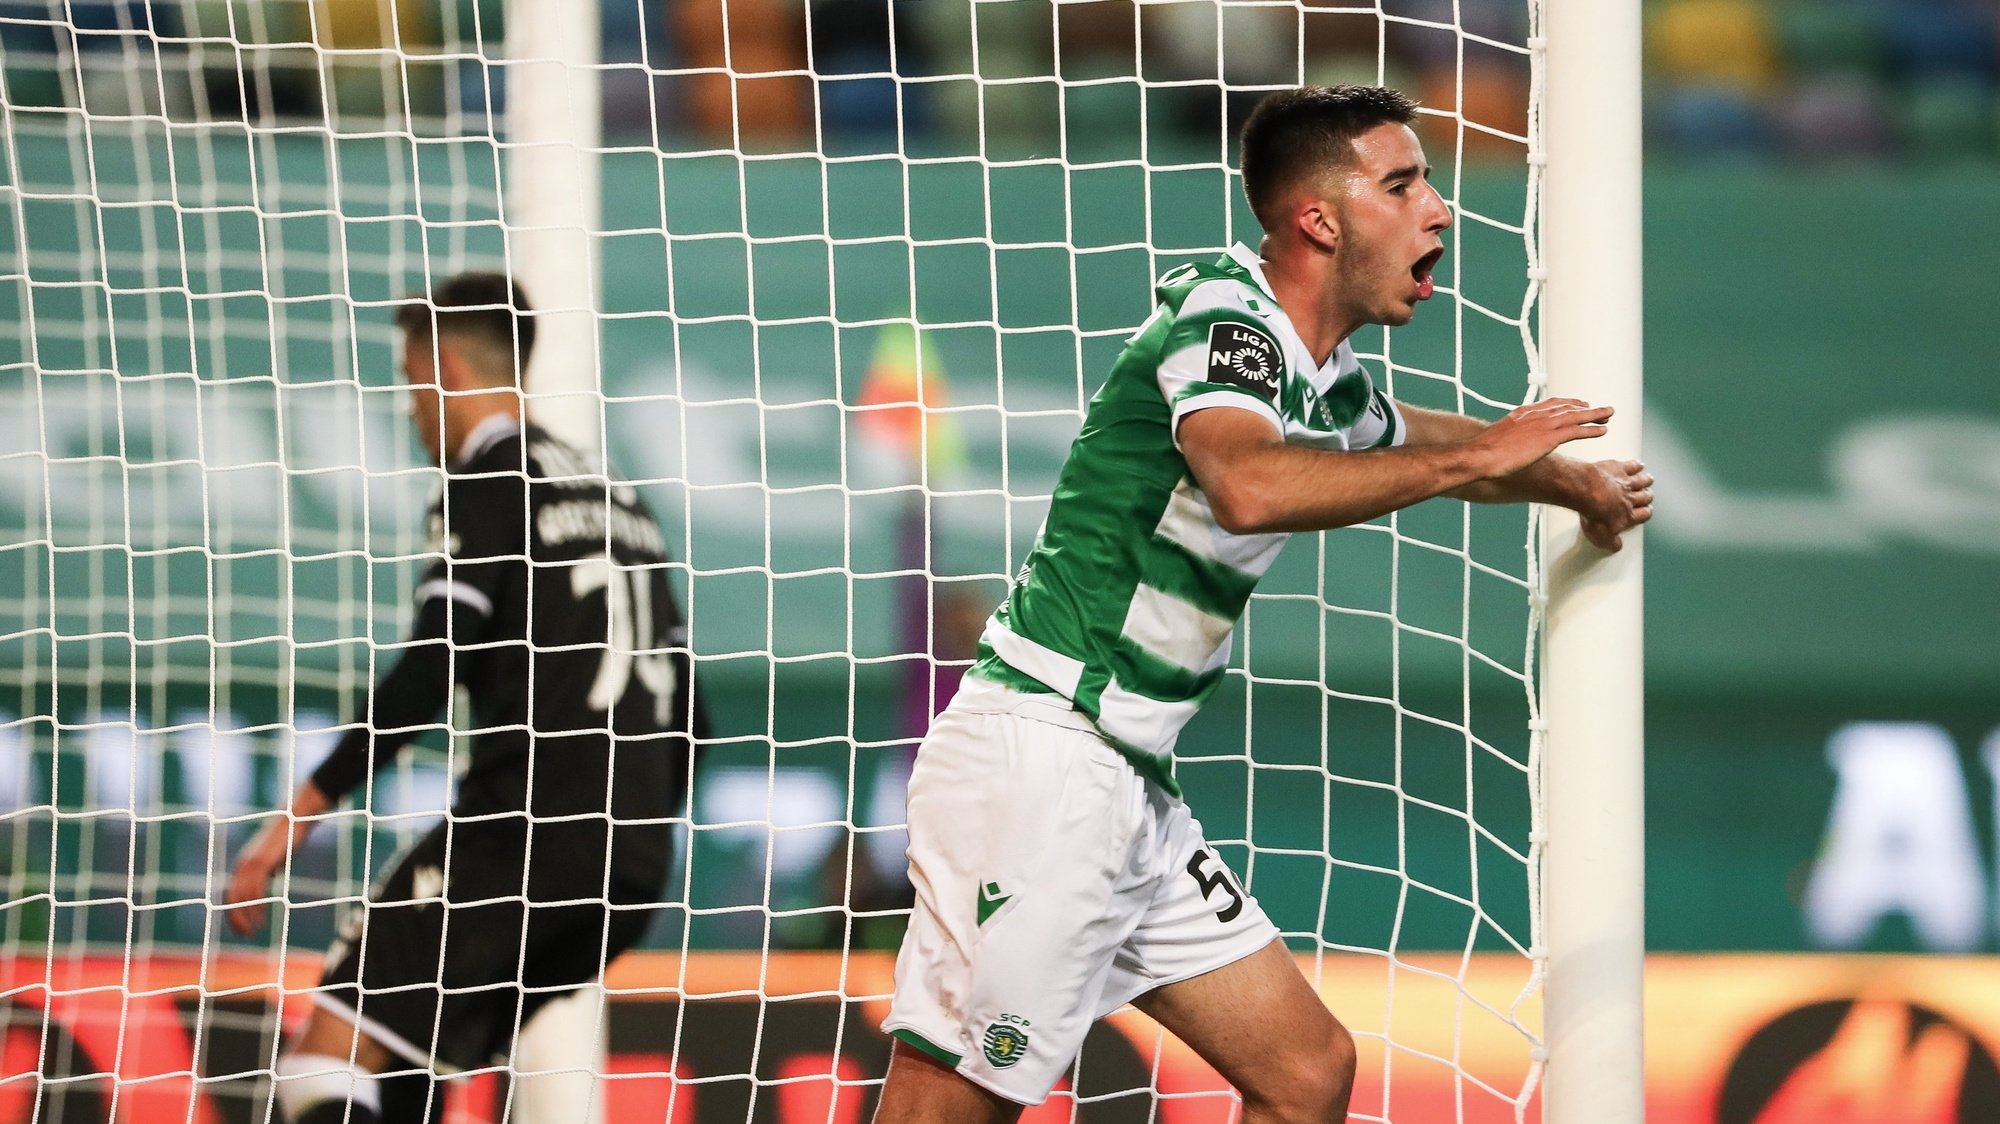 Sporting player Goncalo Inacio celebrates after scoring a goal against Vitoria de Guimaraes during their First League Soccer match held at Alvalade Stadium, in Lisbon, Portugal, 20 March 2021. JOSE SENA GOULAO/LUSA